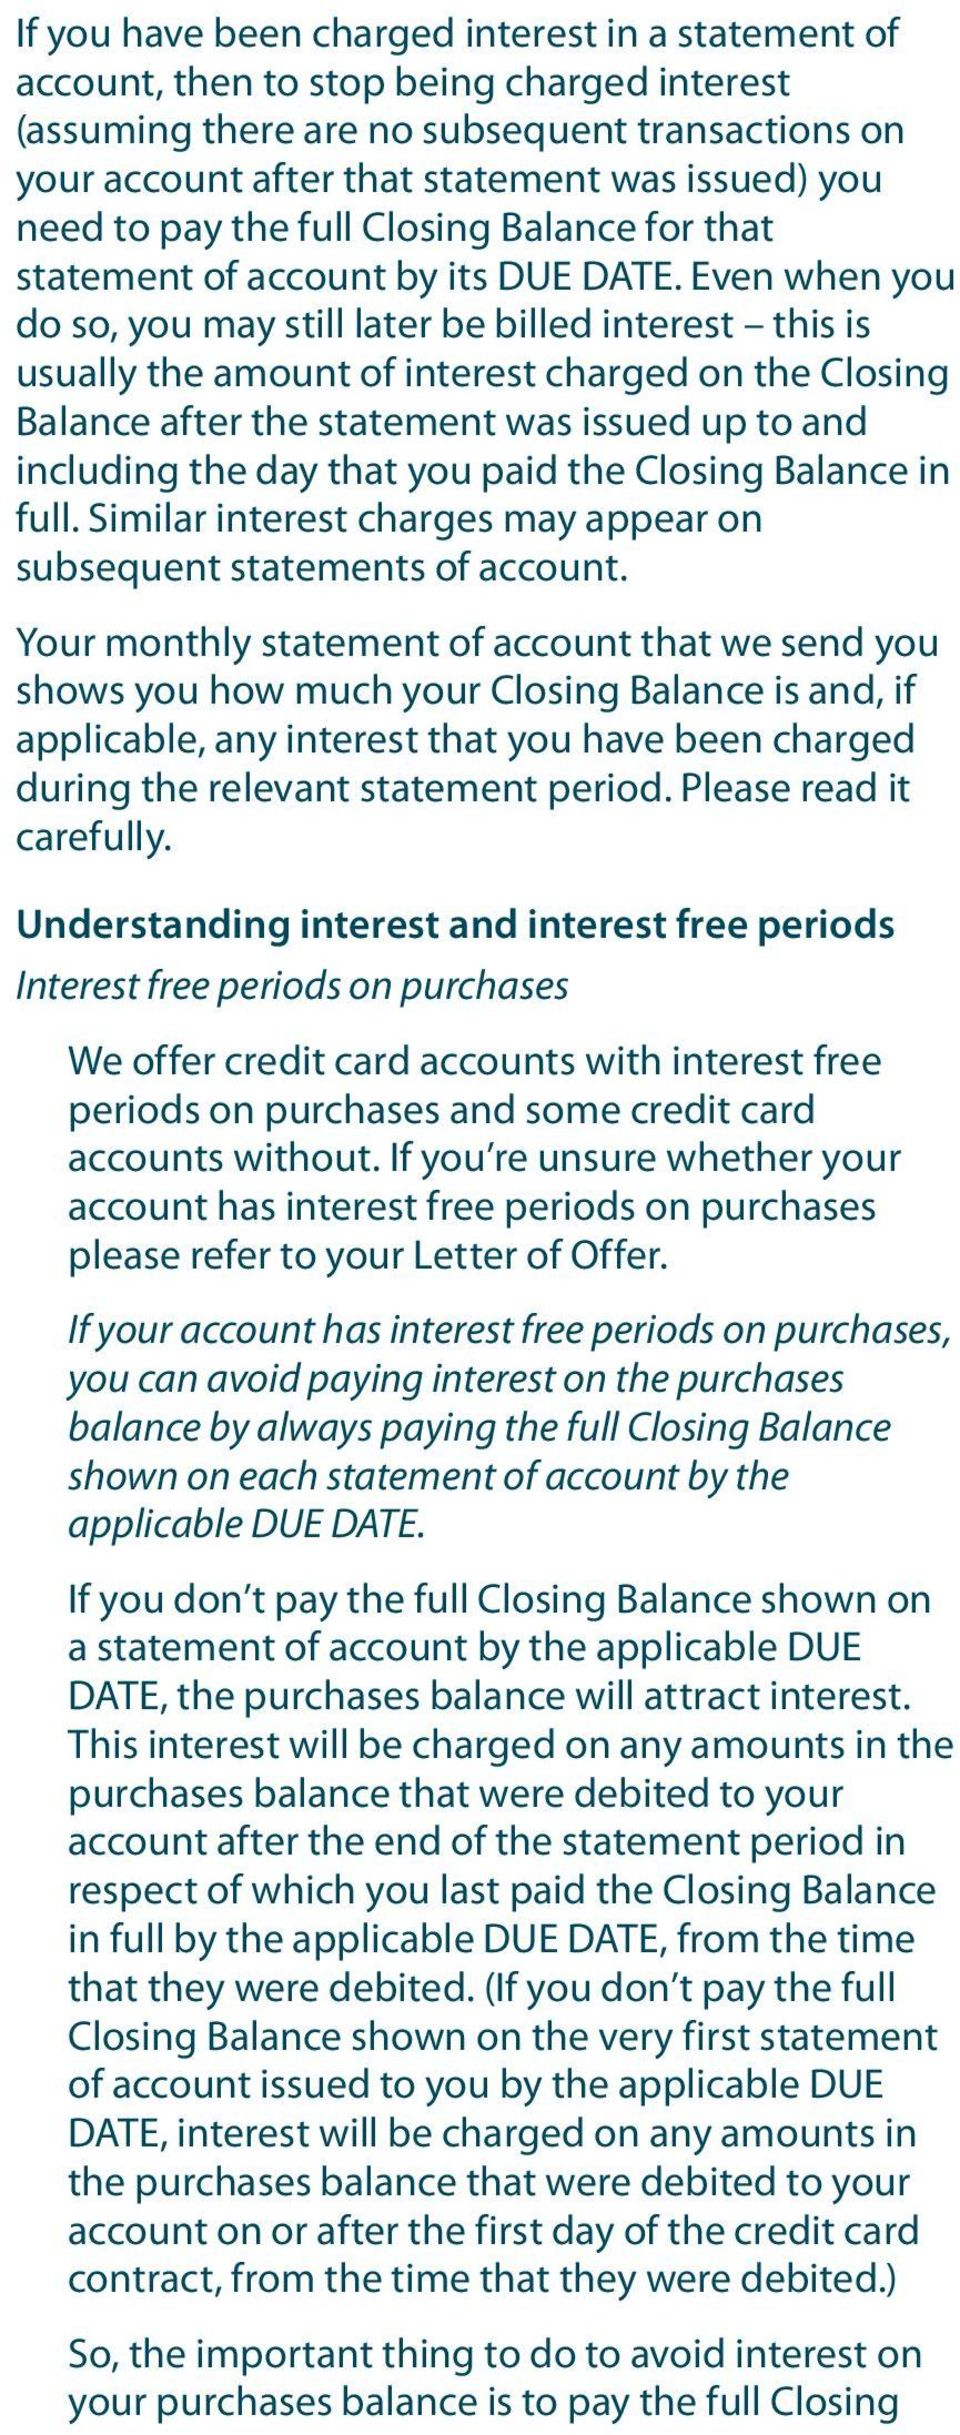 Even when you do so, you may still later be billed interest this is usually the amount of interest charged on the Closing Balance after the statement was issued up to and including the day that you